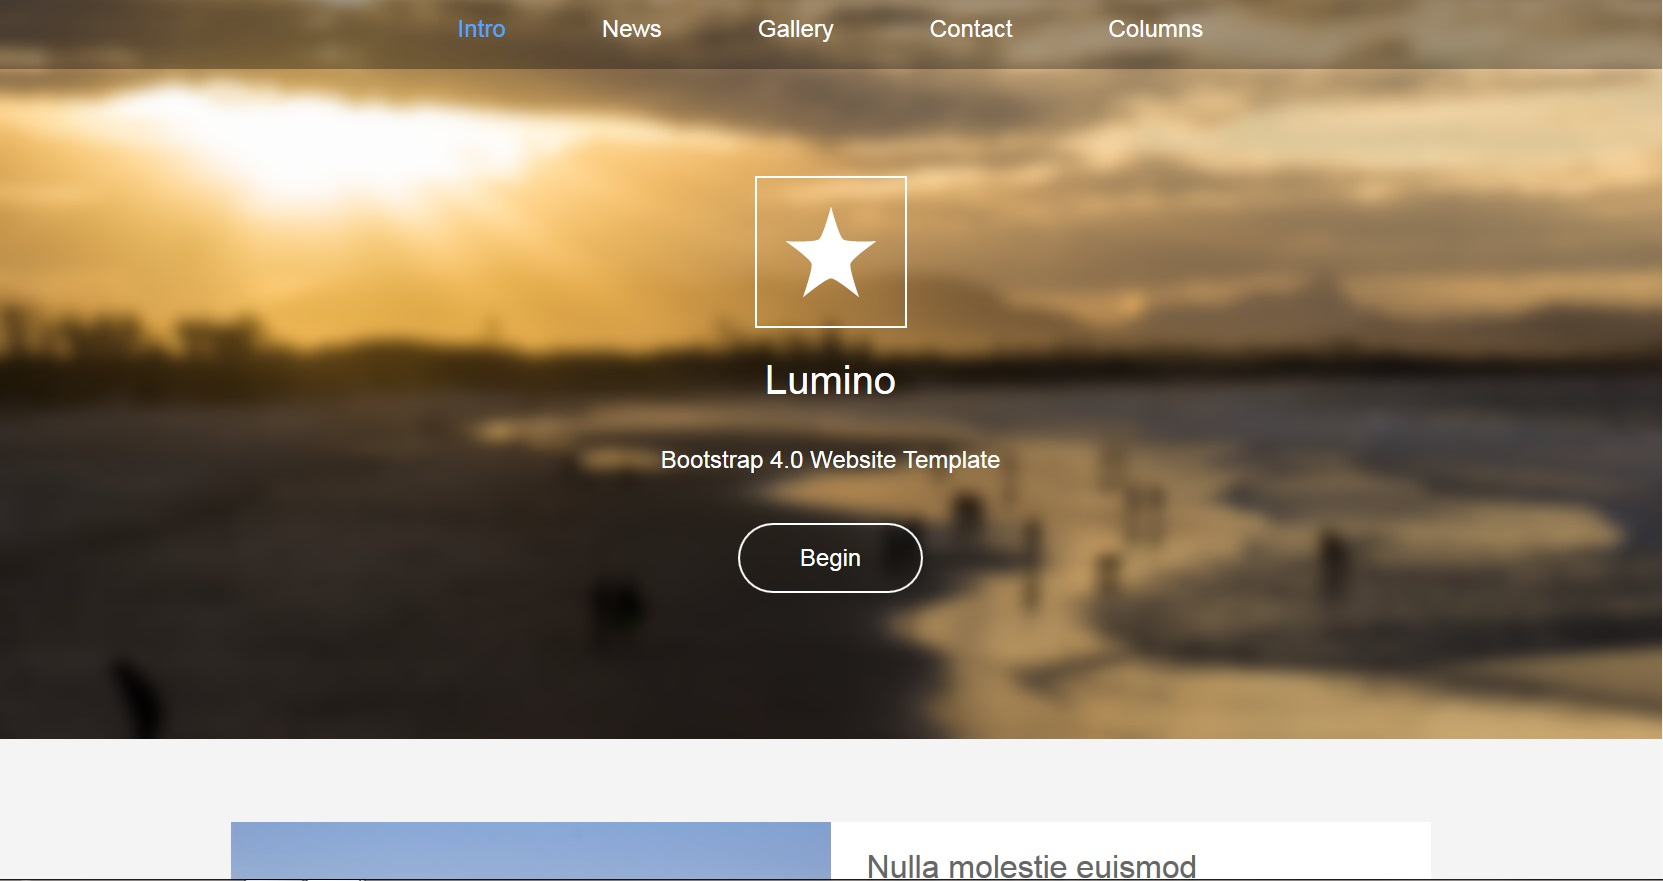 Lumino Theme with on page editing snapshot